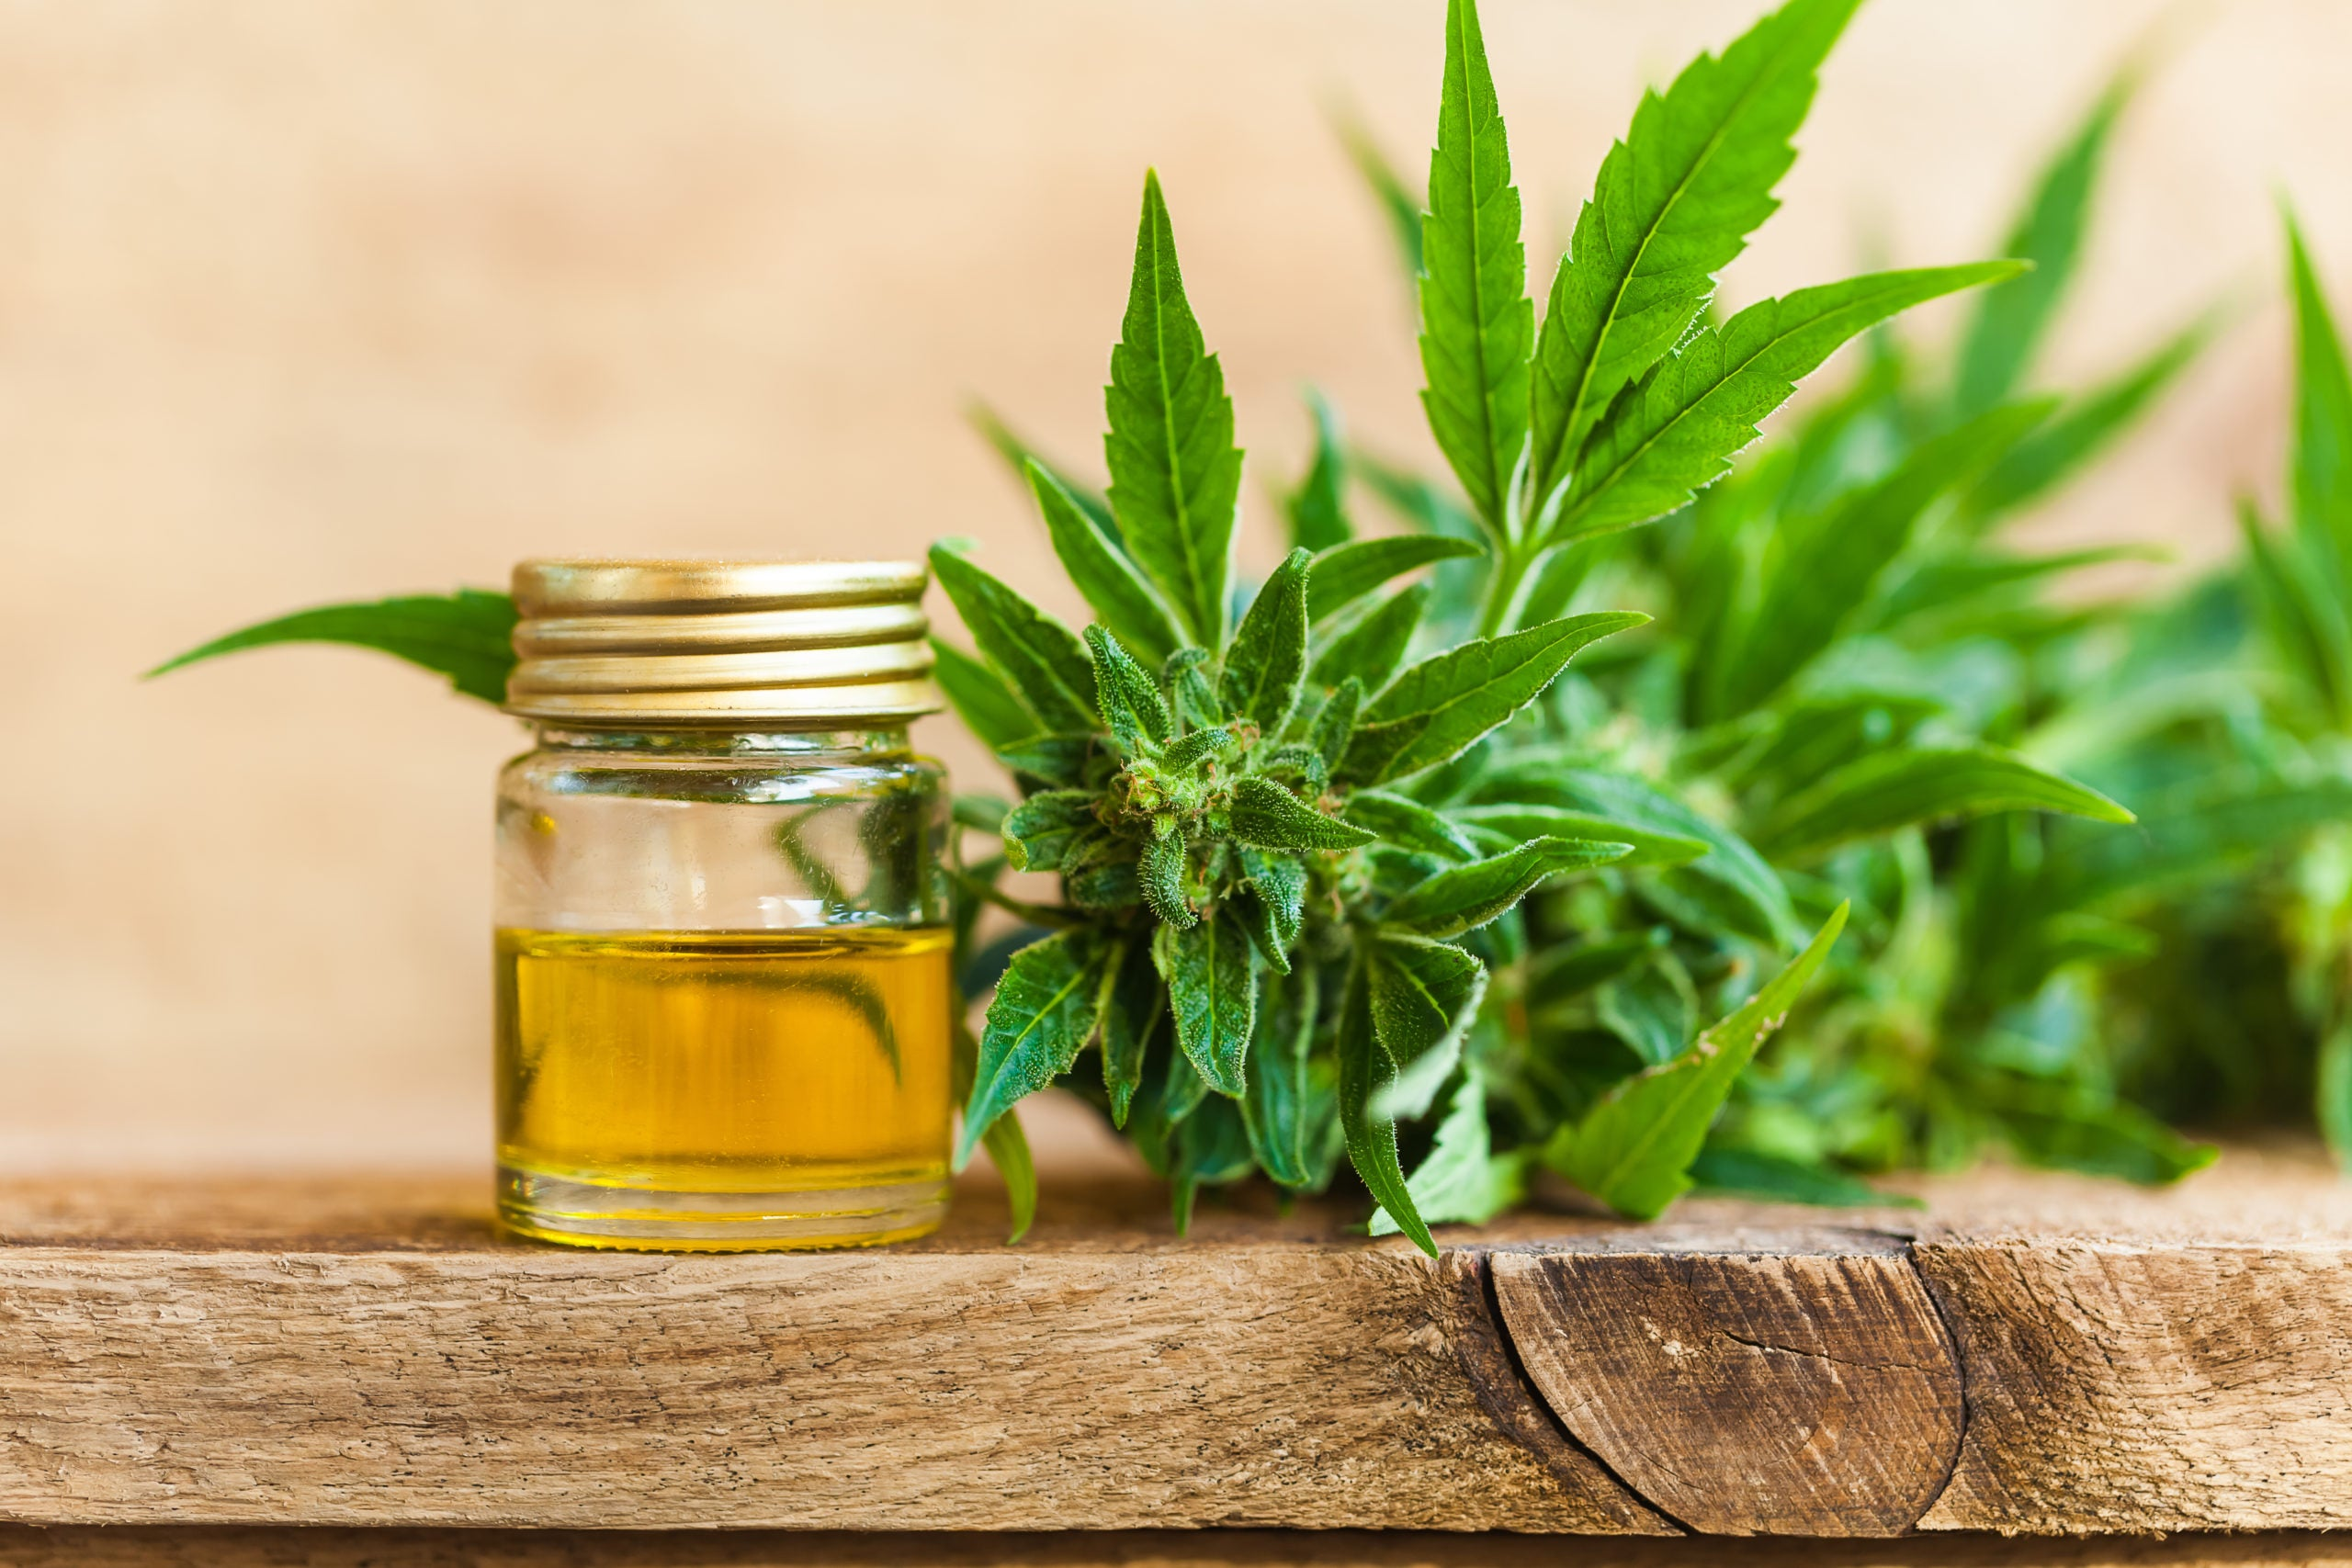 Does CBD Oil Expire? 8 Things to Know